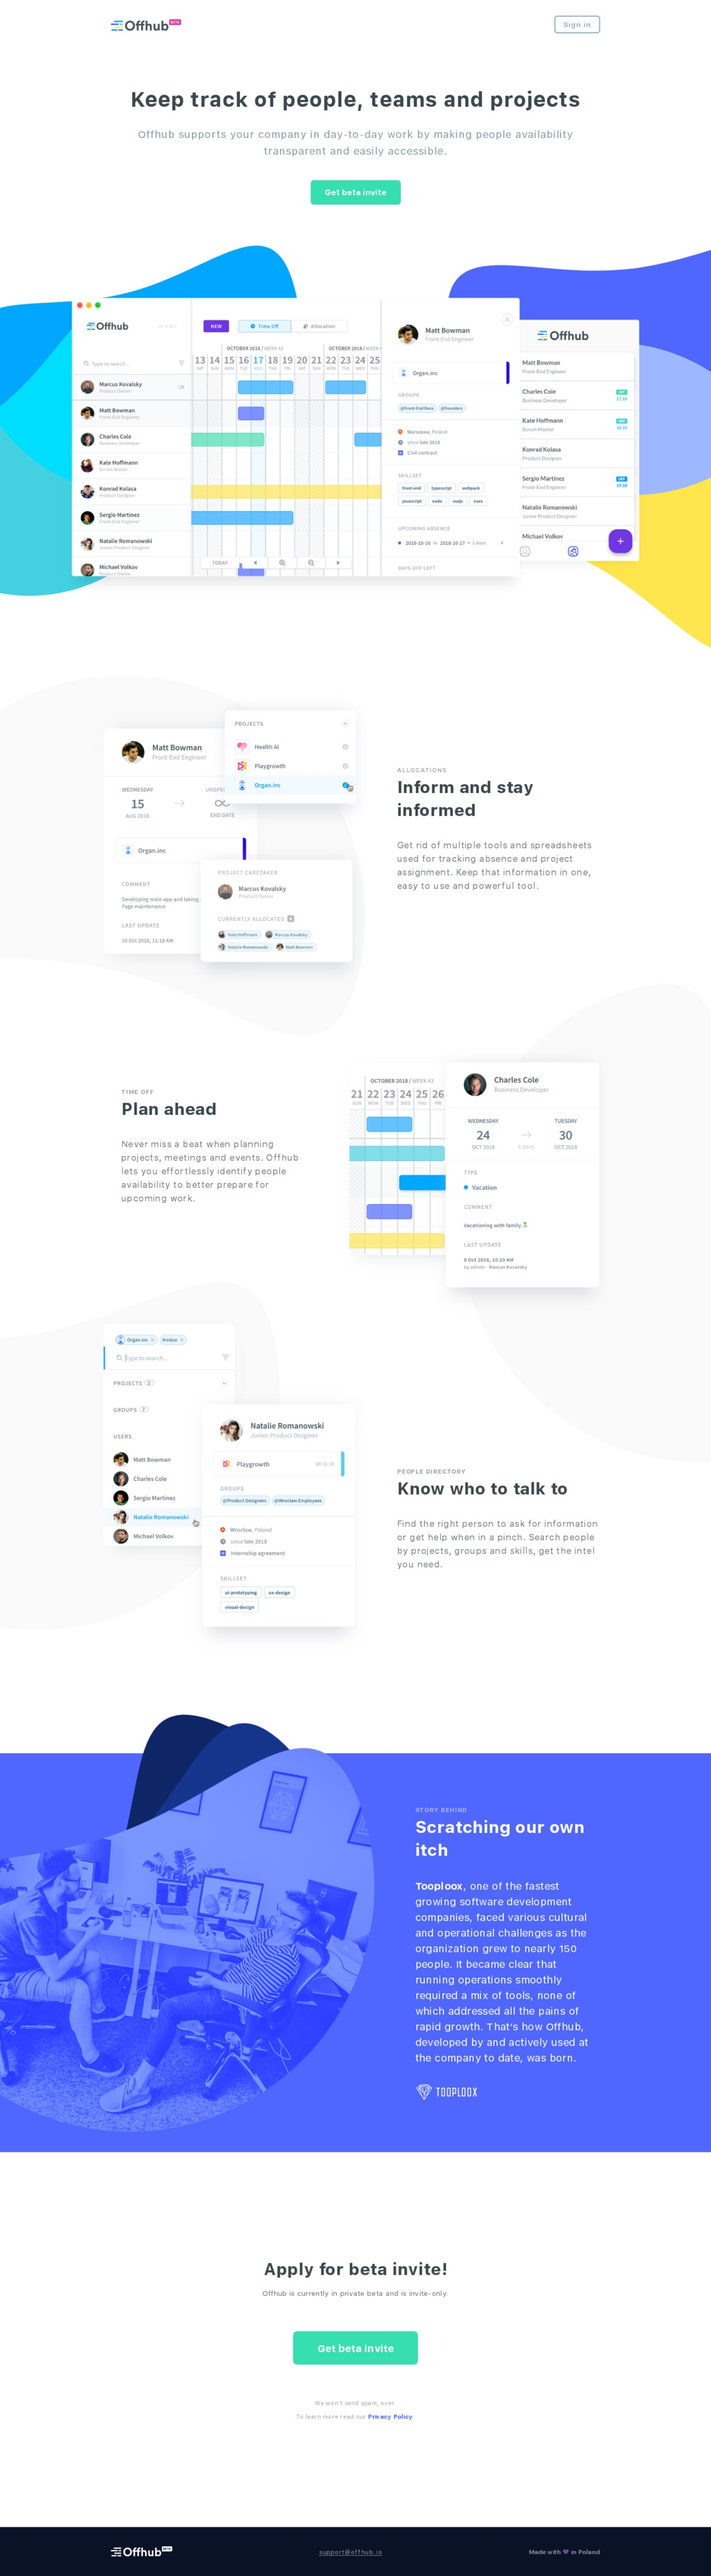 Offhub ─ Keep track of people, teams and projects